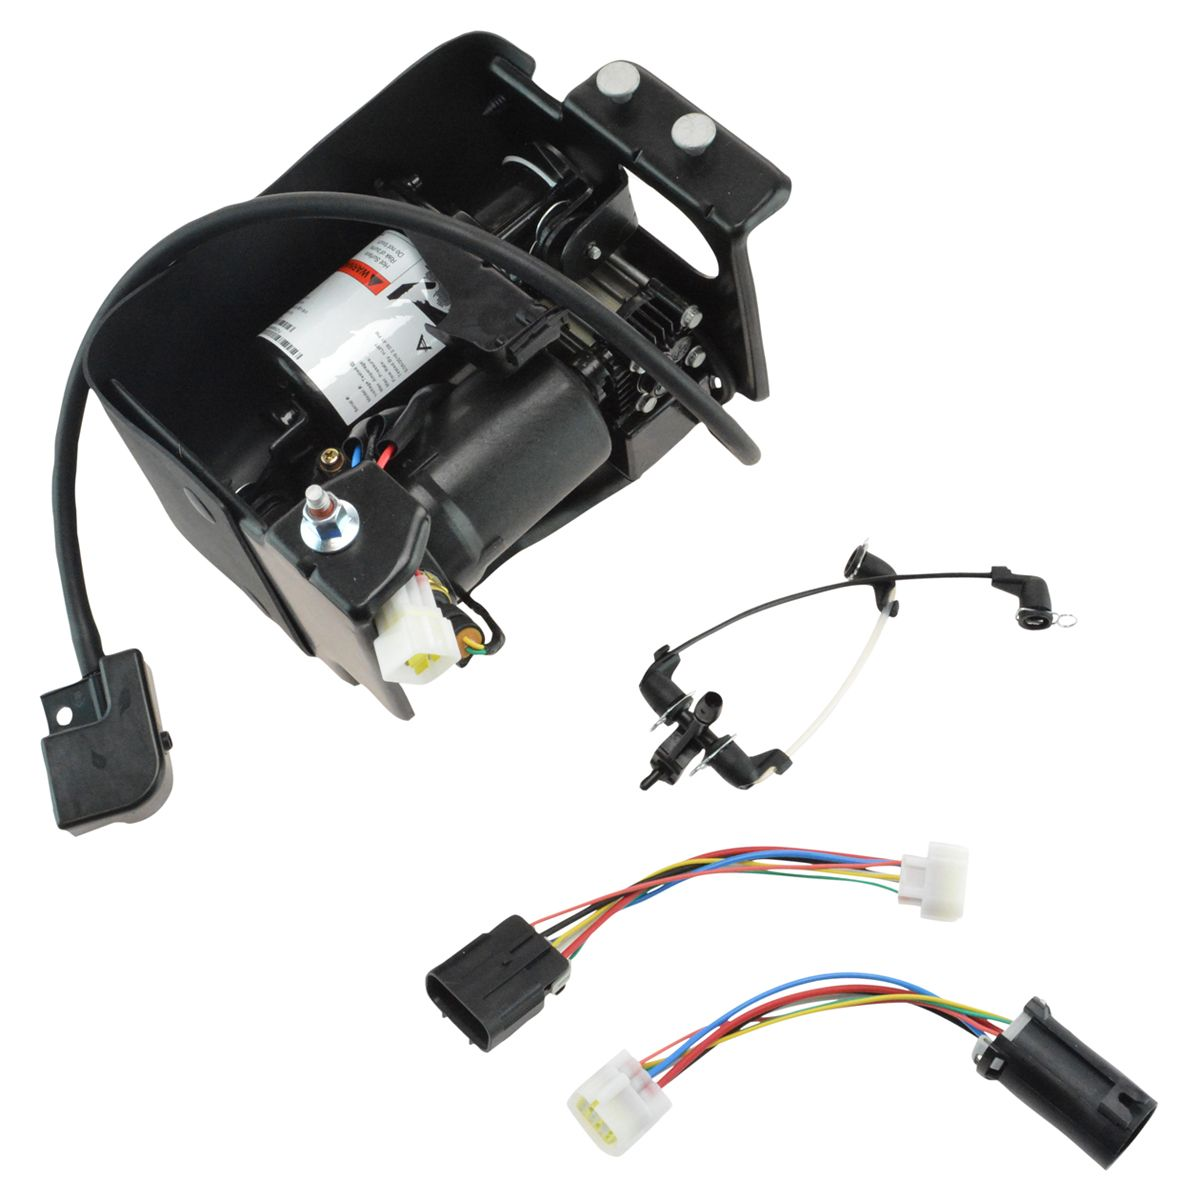 Details about ARNOTT P-2793 Air Ride Suspension Bag Compressor for Tahoe  Suburban Pickup Truck